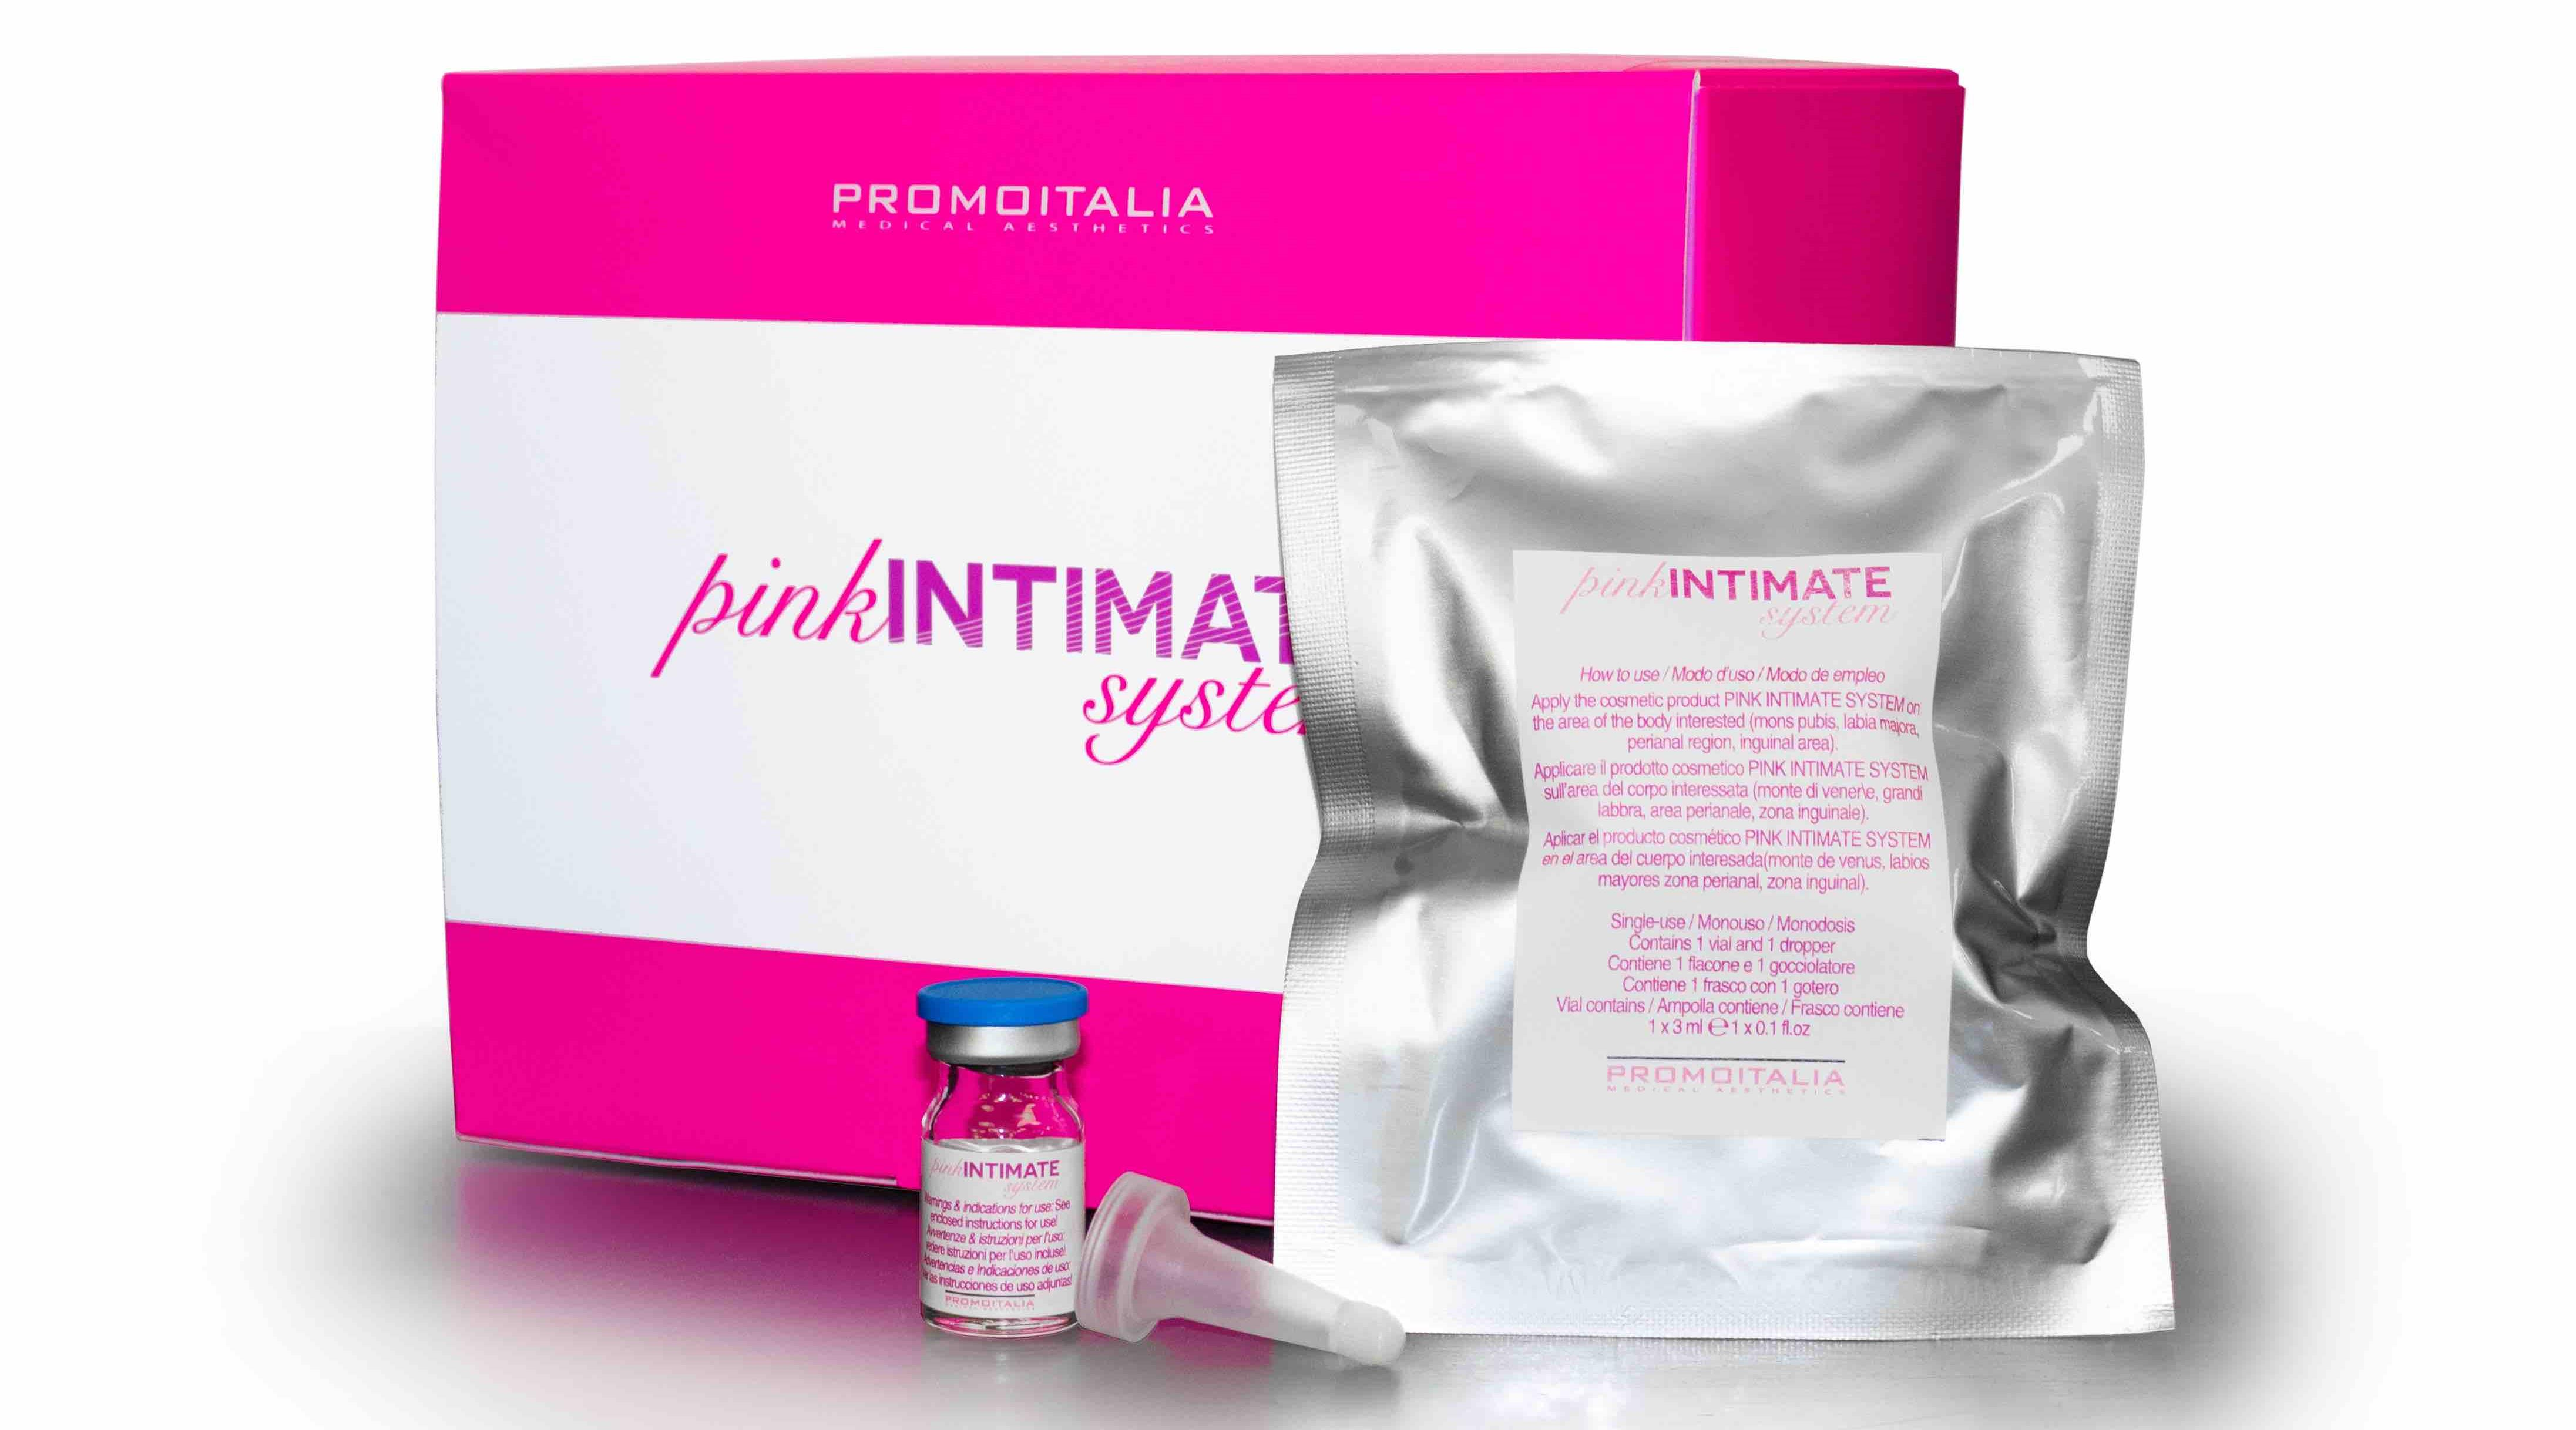 Pink Intimate vaginal rejuvenation skin treatment launches in UK